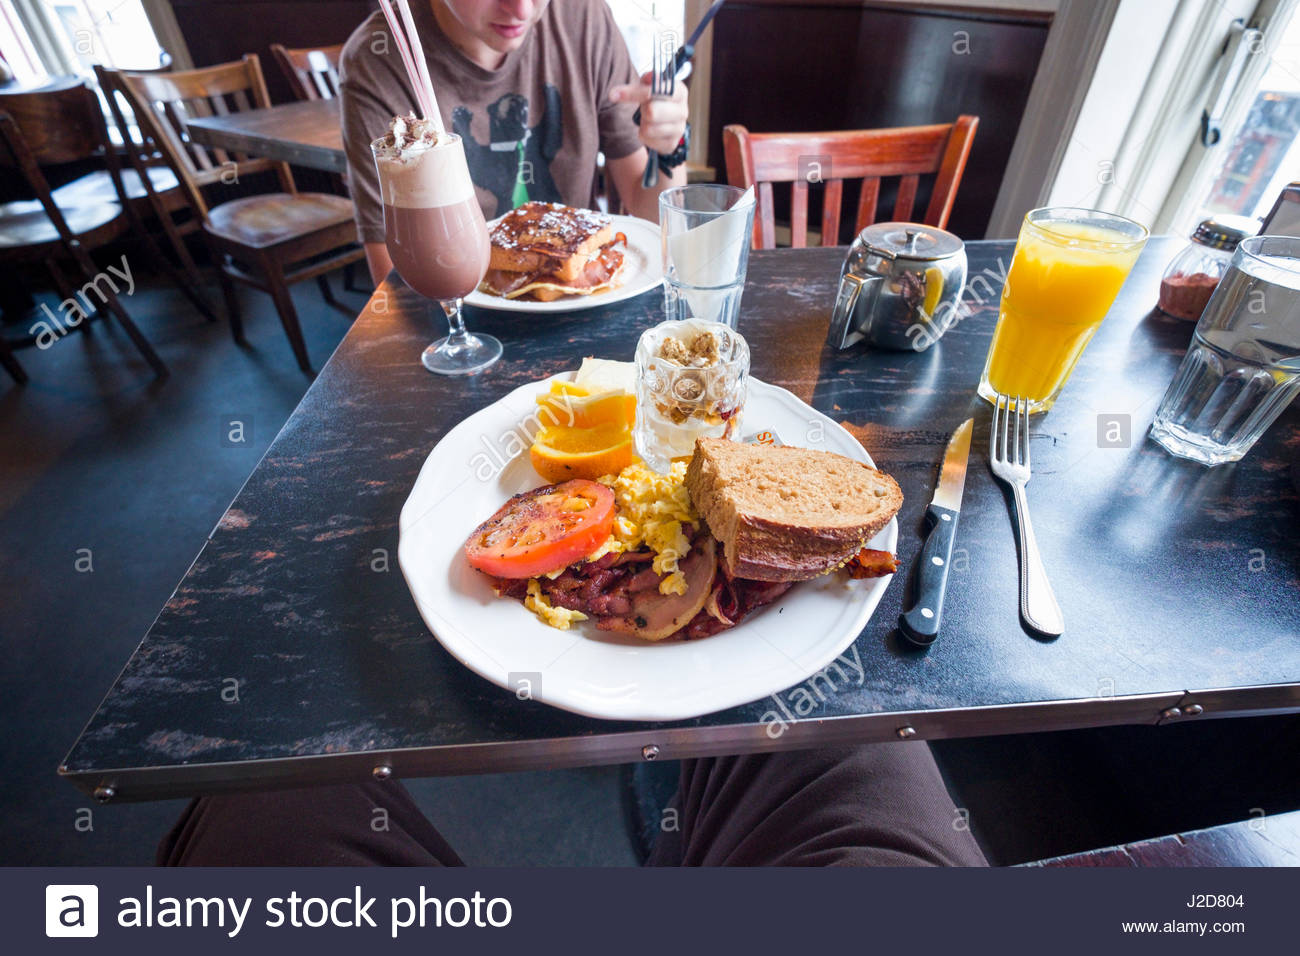 Reykjavik Food Cafe High Resolution Stock Photography And Images Alamy